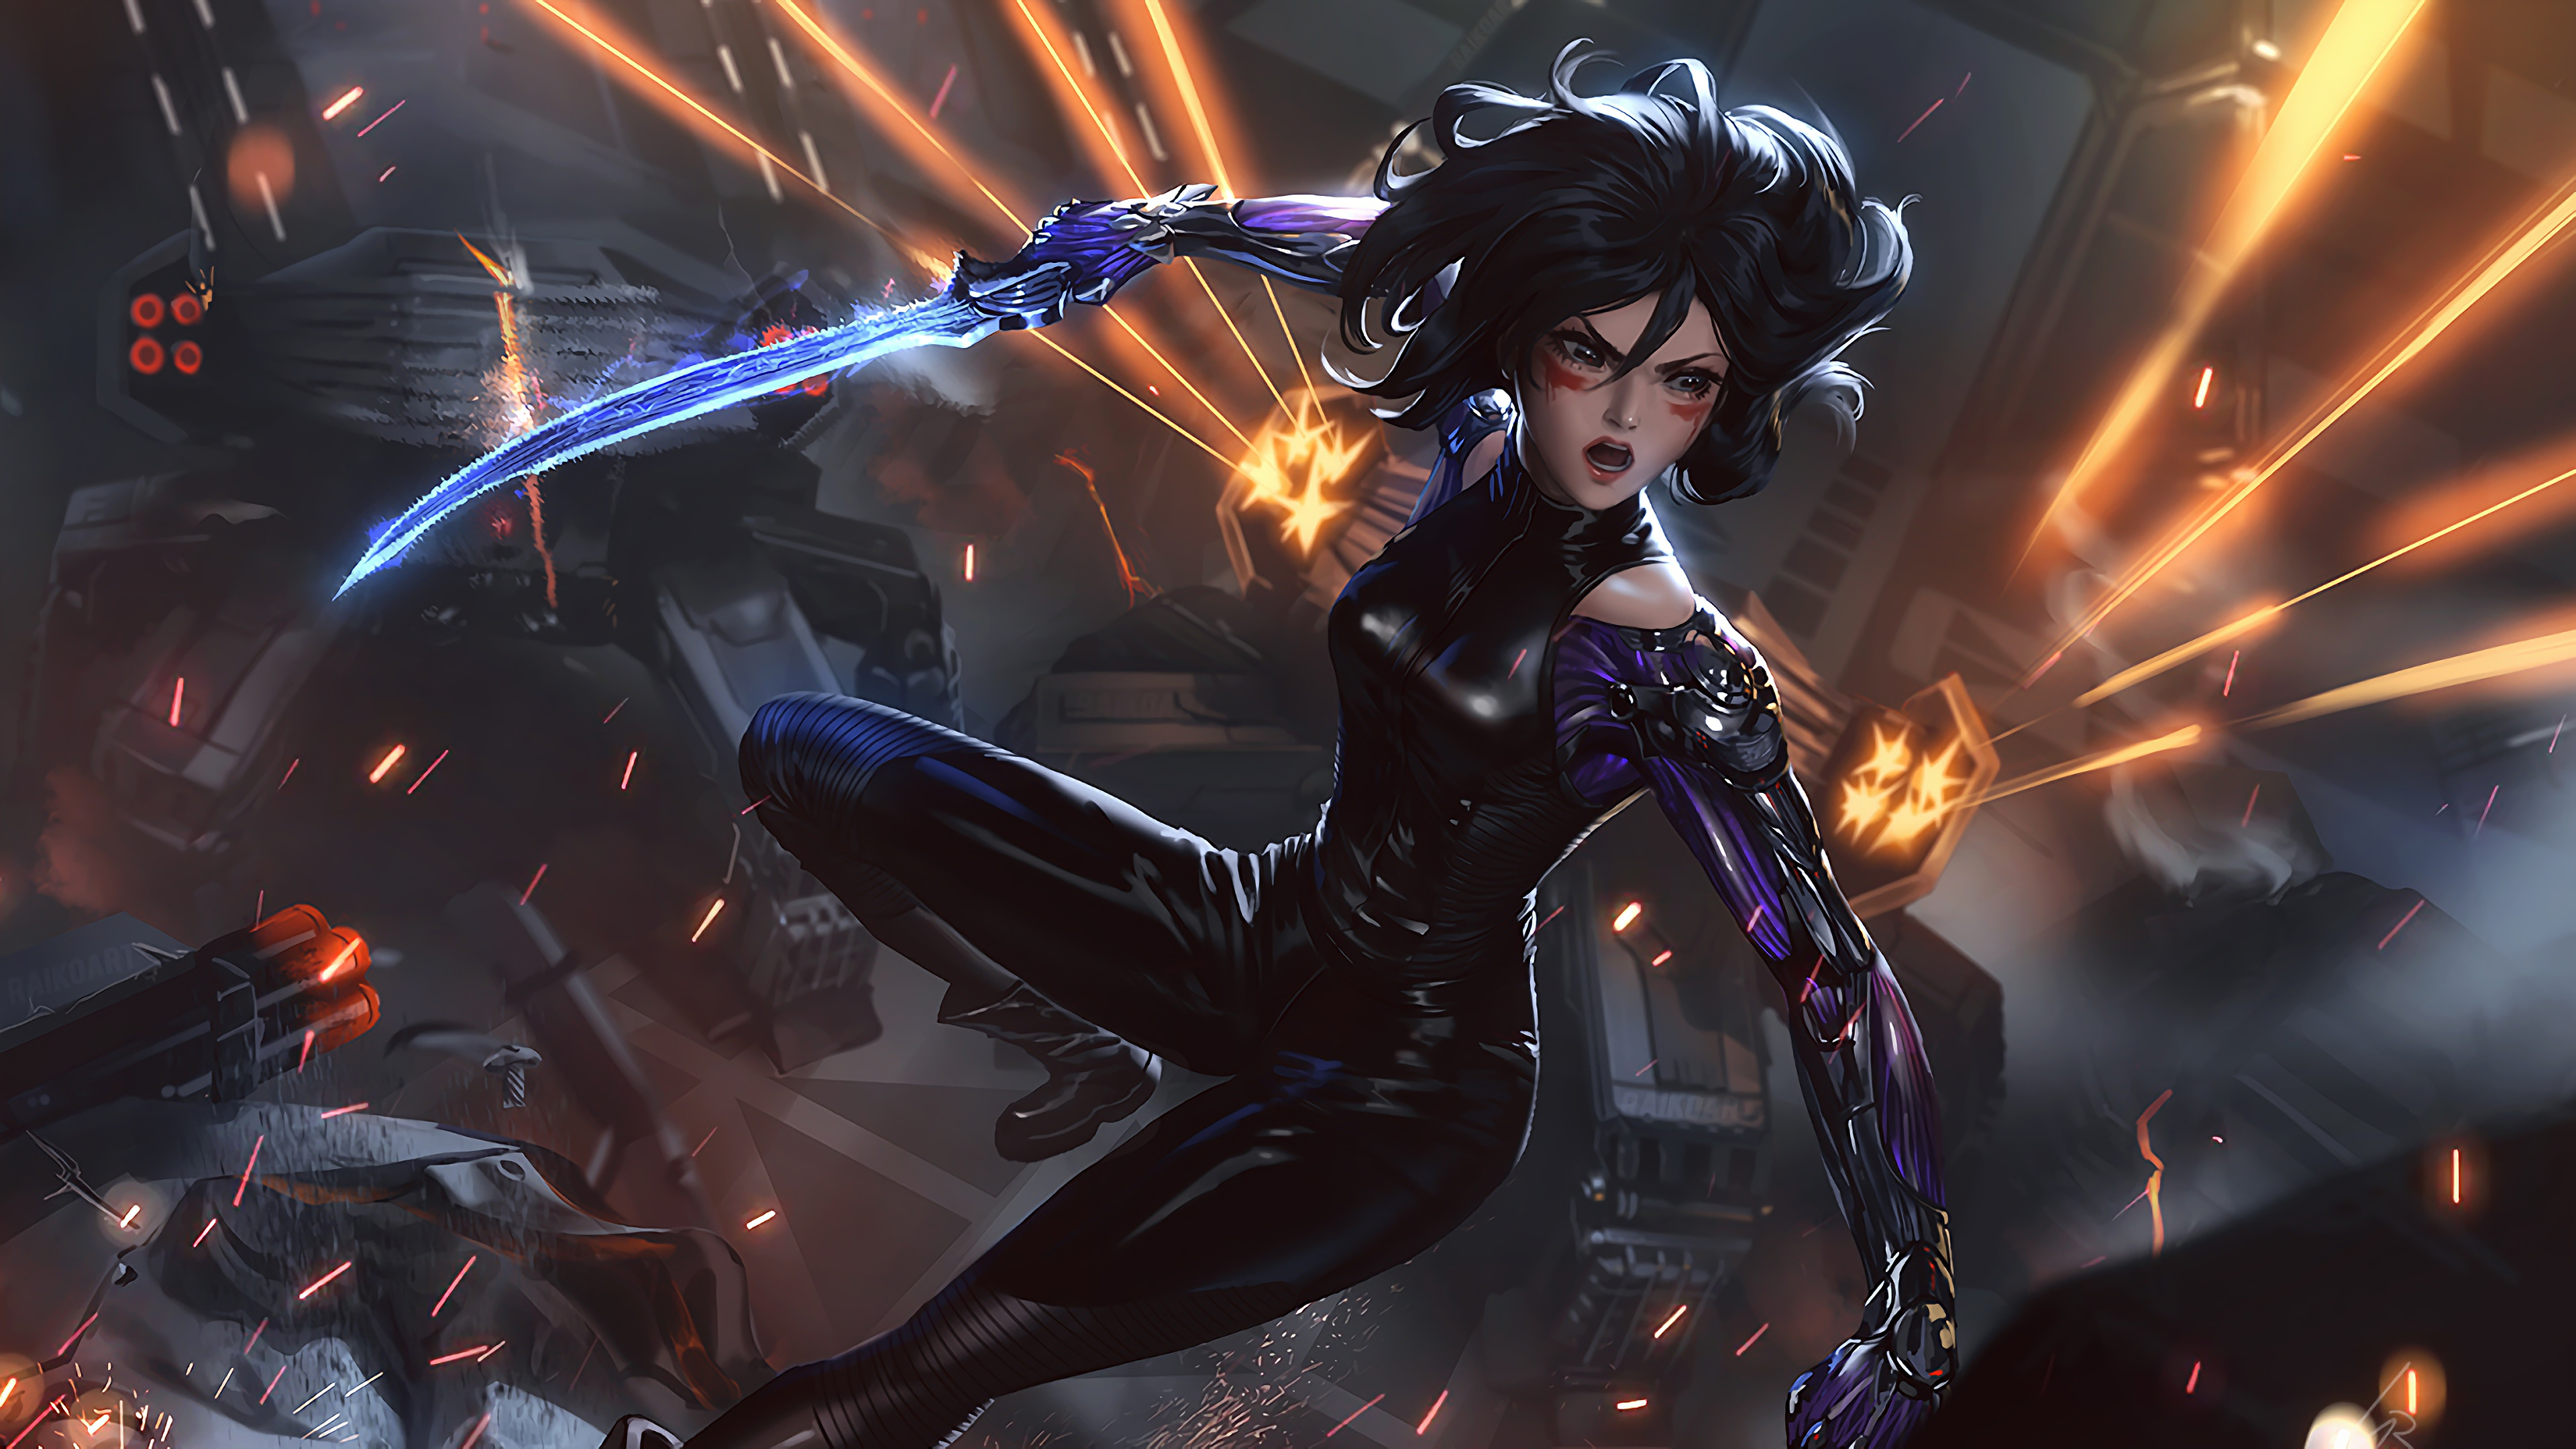 Alita Battle Angel Sword 4k Wallpaper 34